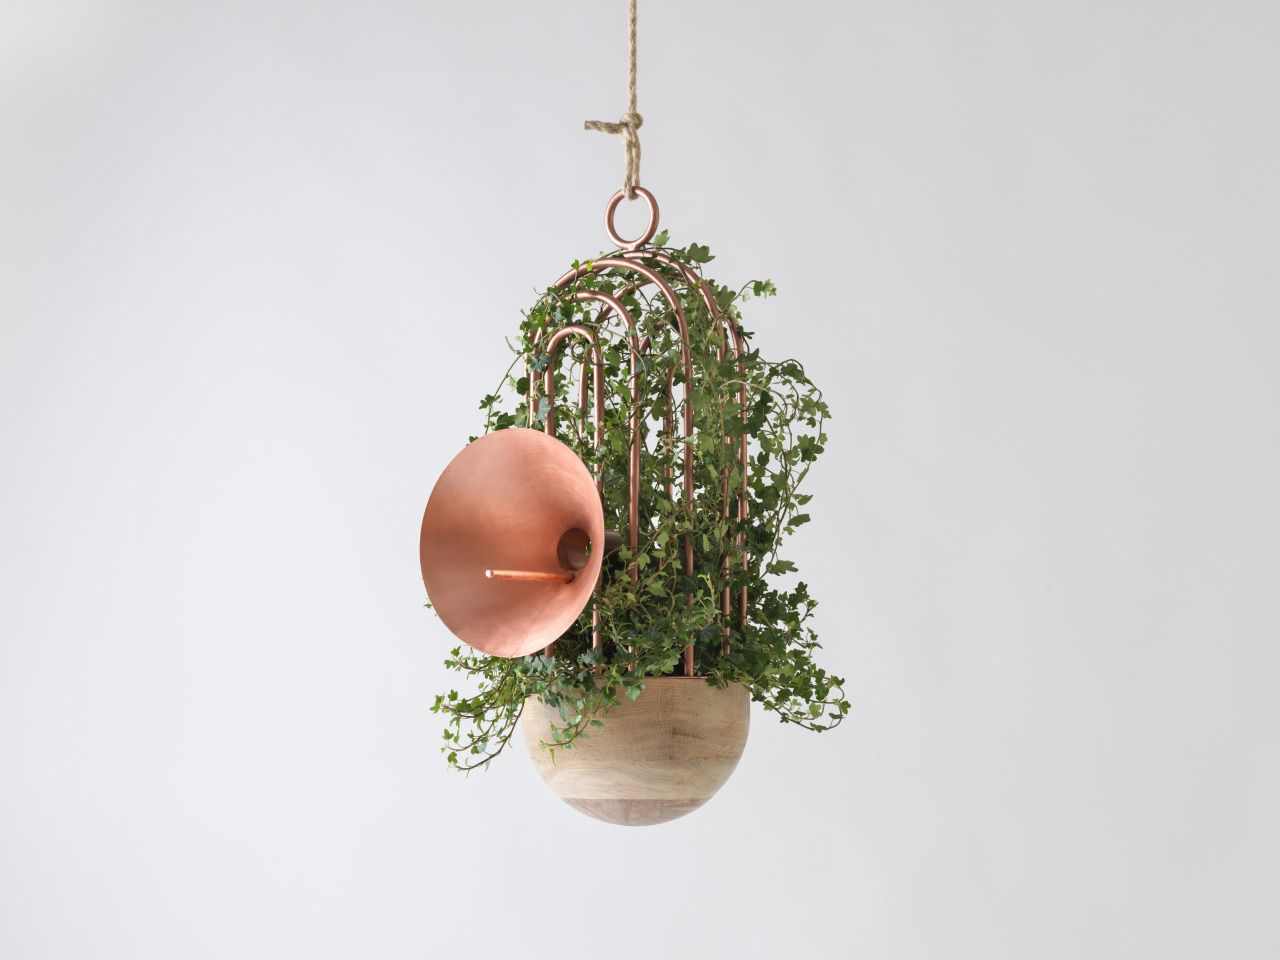 'Orator' Bird Feeder, Nest & Speaker by Katia Tolstykh.